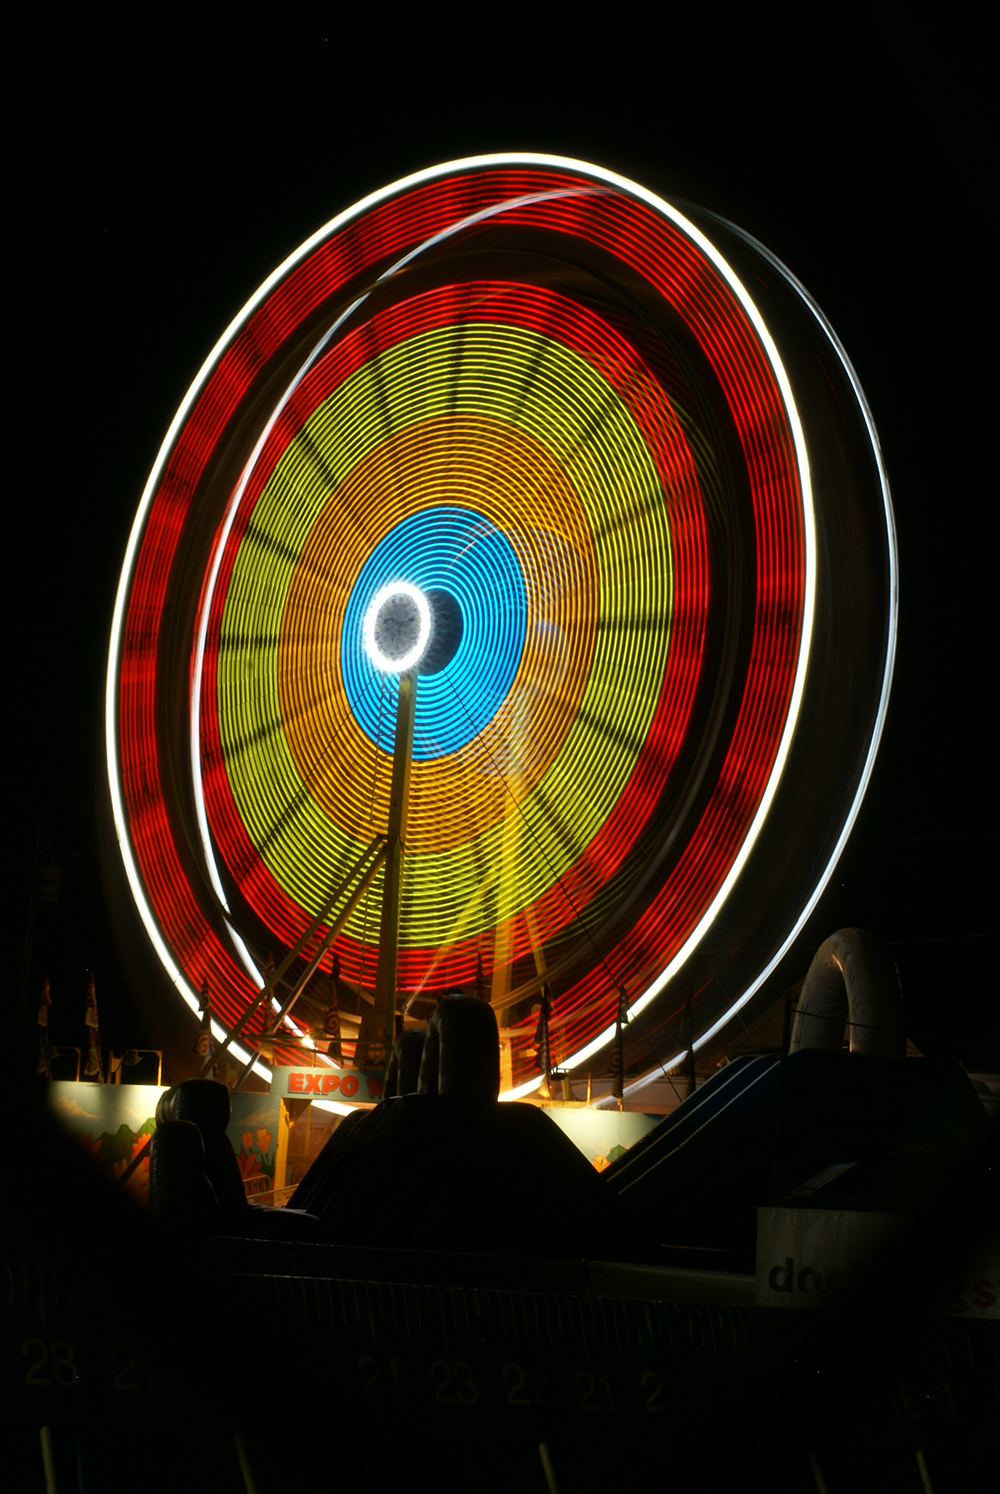 A longer exposure shot of the Ferris wheel